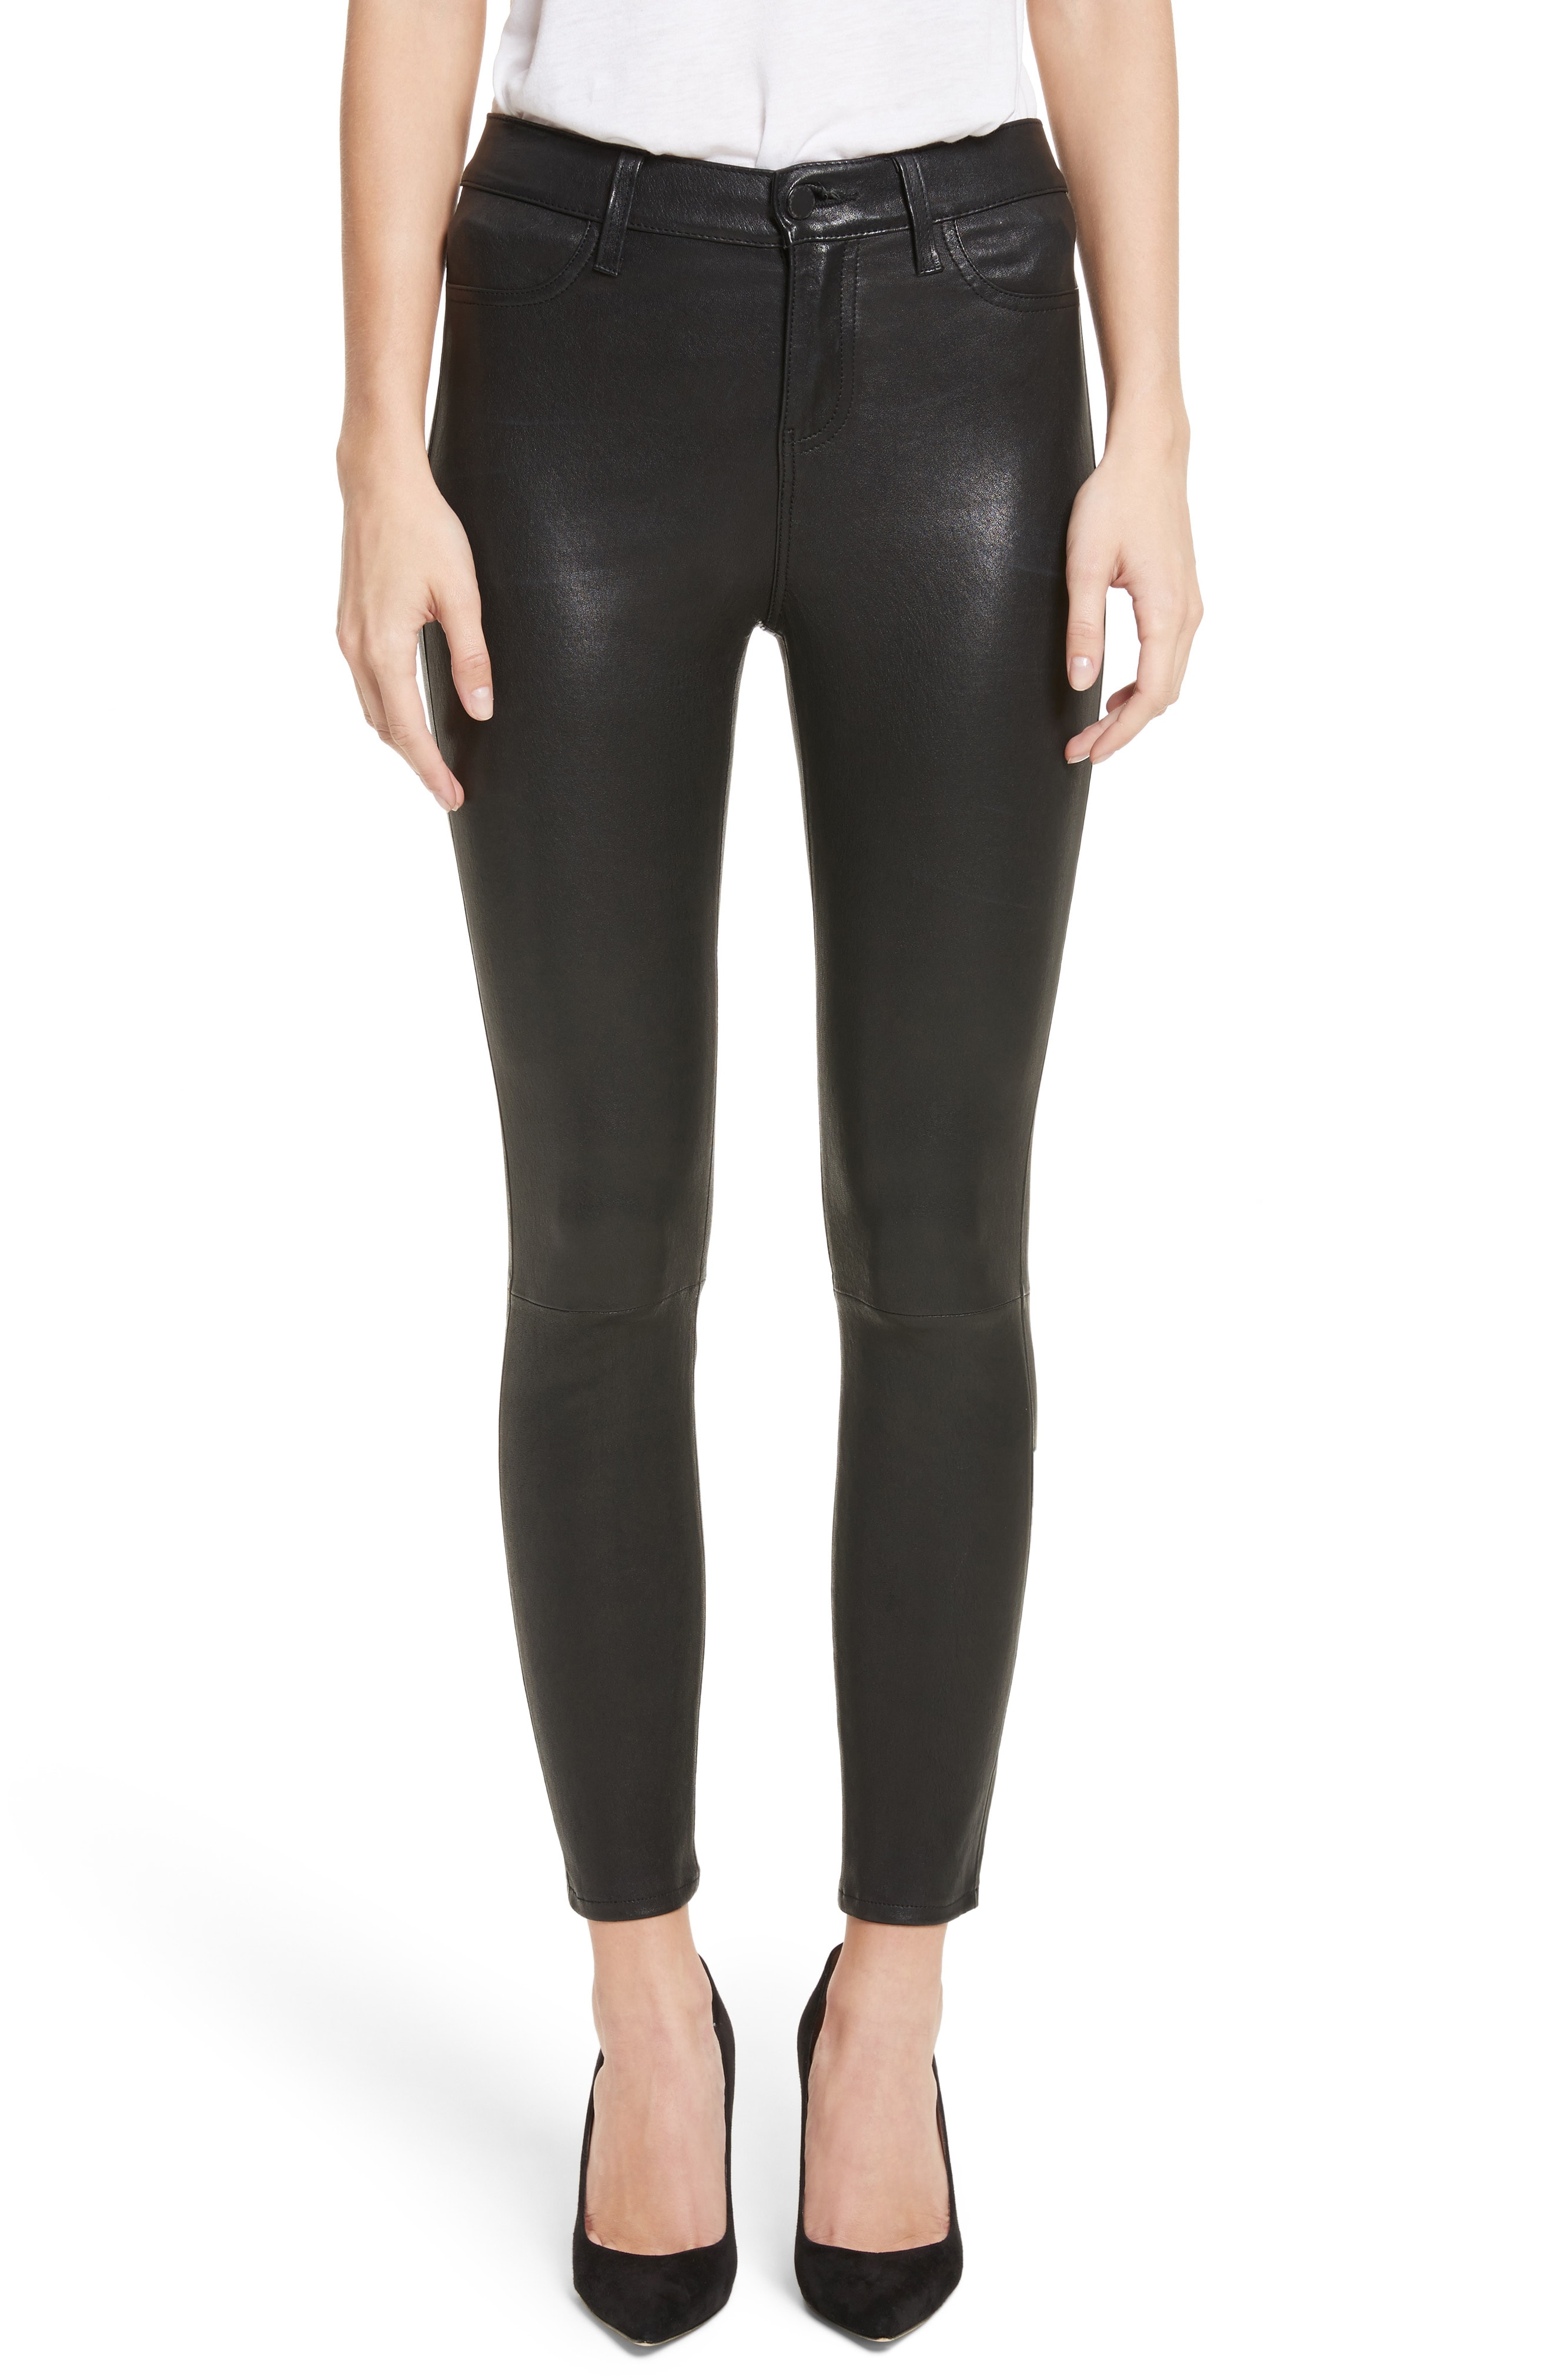 LAGENCE Adelaide High Waist Crop Leather Jeans